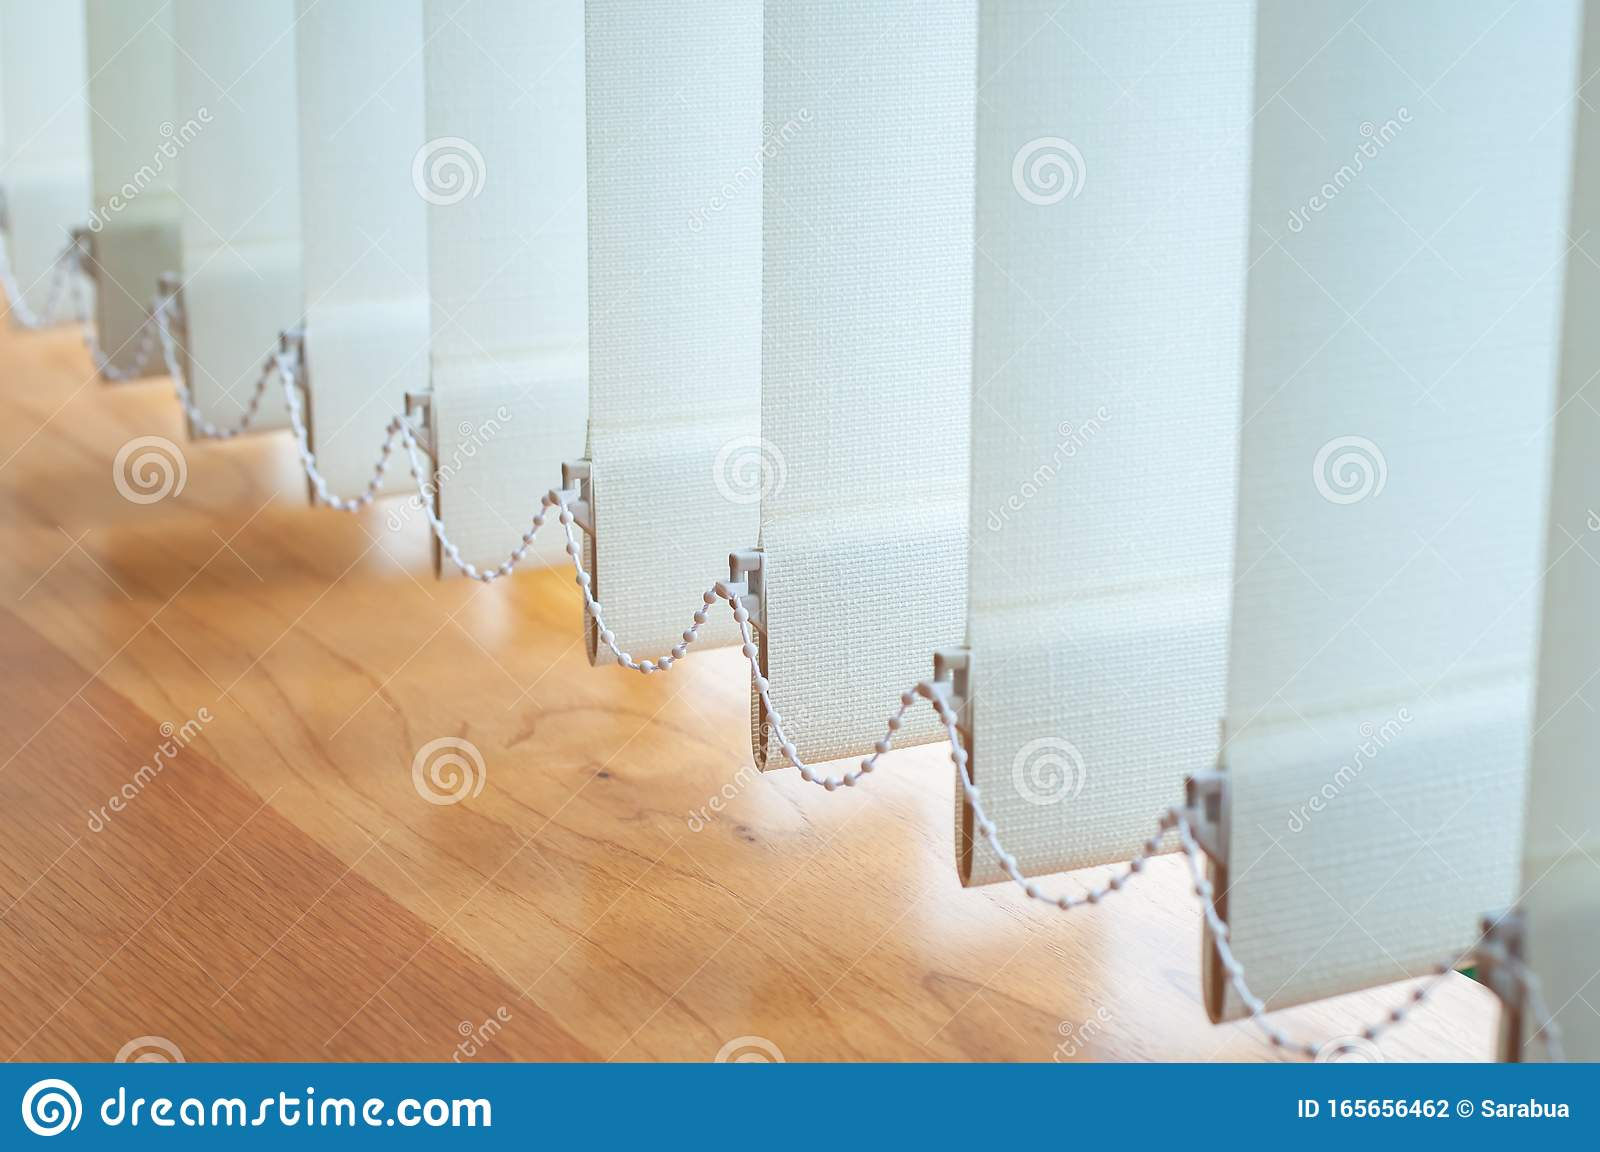 Vertical Blind For The Office Room Decoration Stock Photo Image Of Frame Pattern 165656462